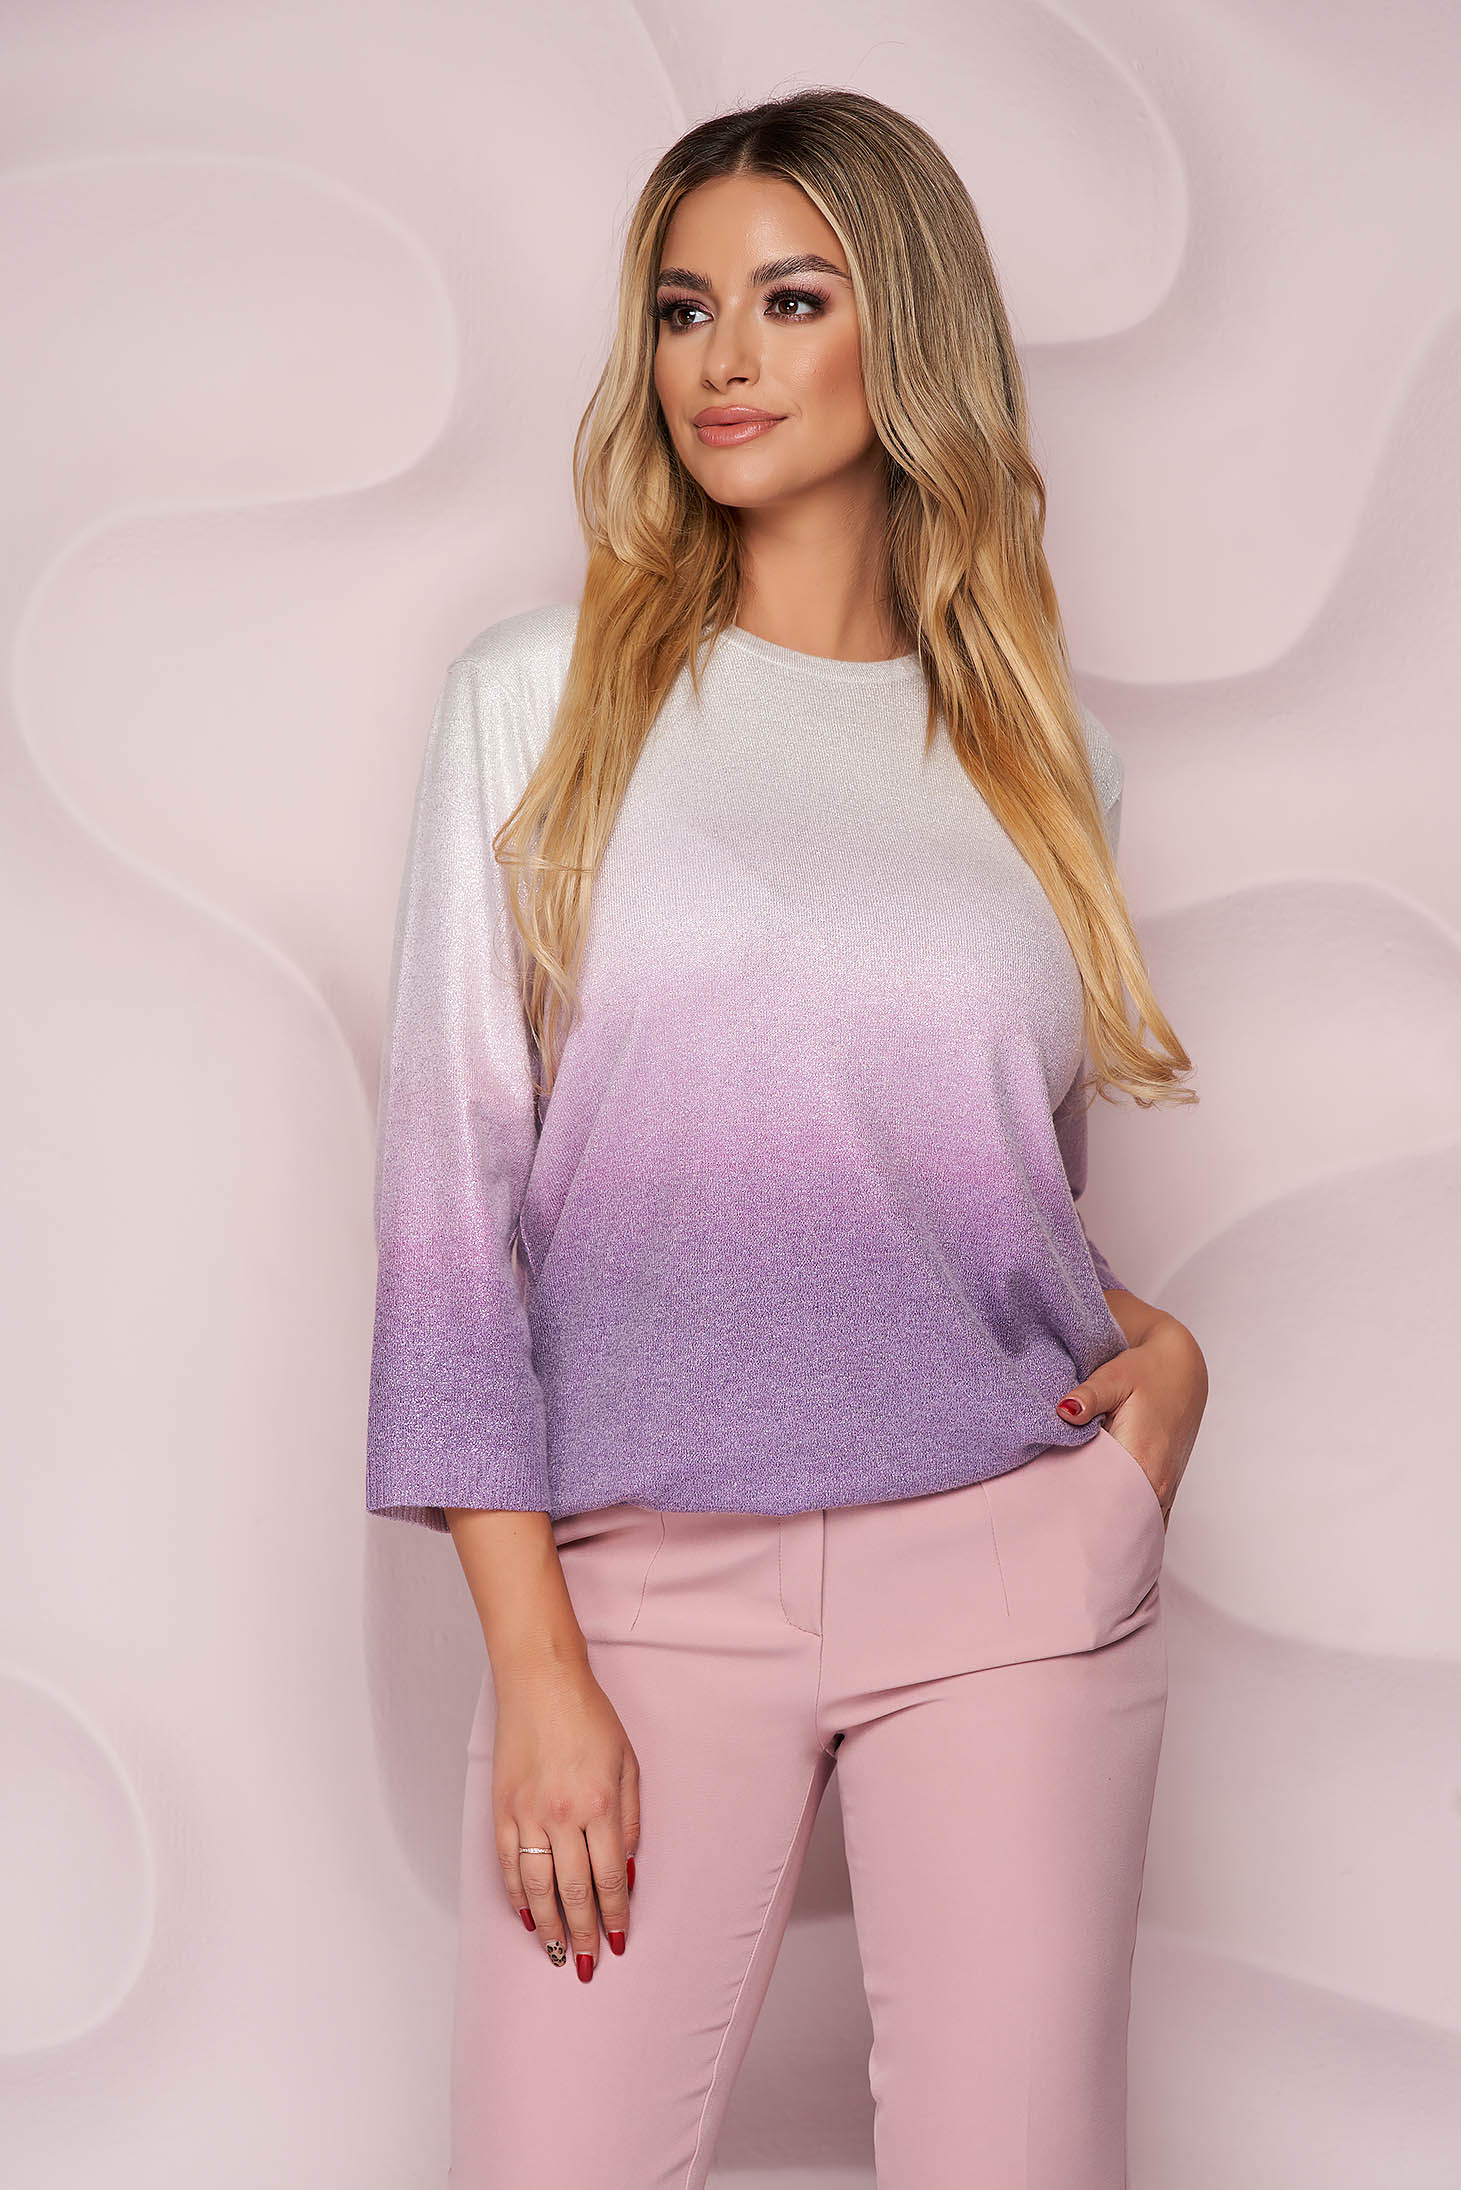 Lila sweater knitted loose fit casual with 3/4 sleeves from elastic fabric